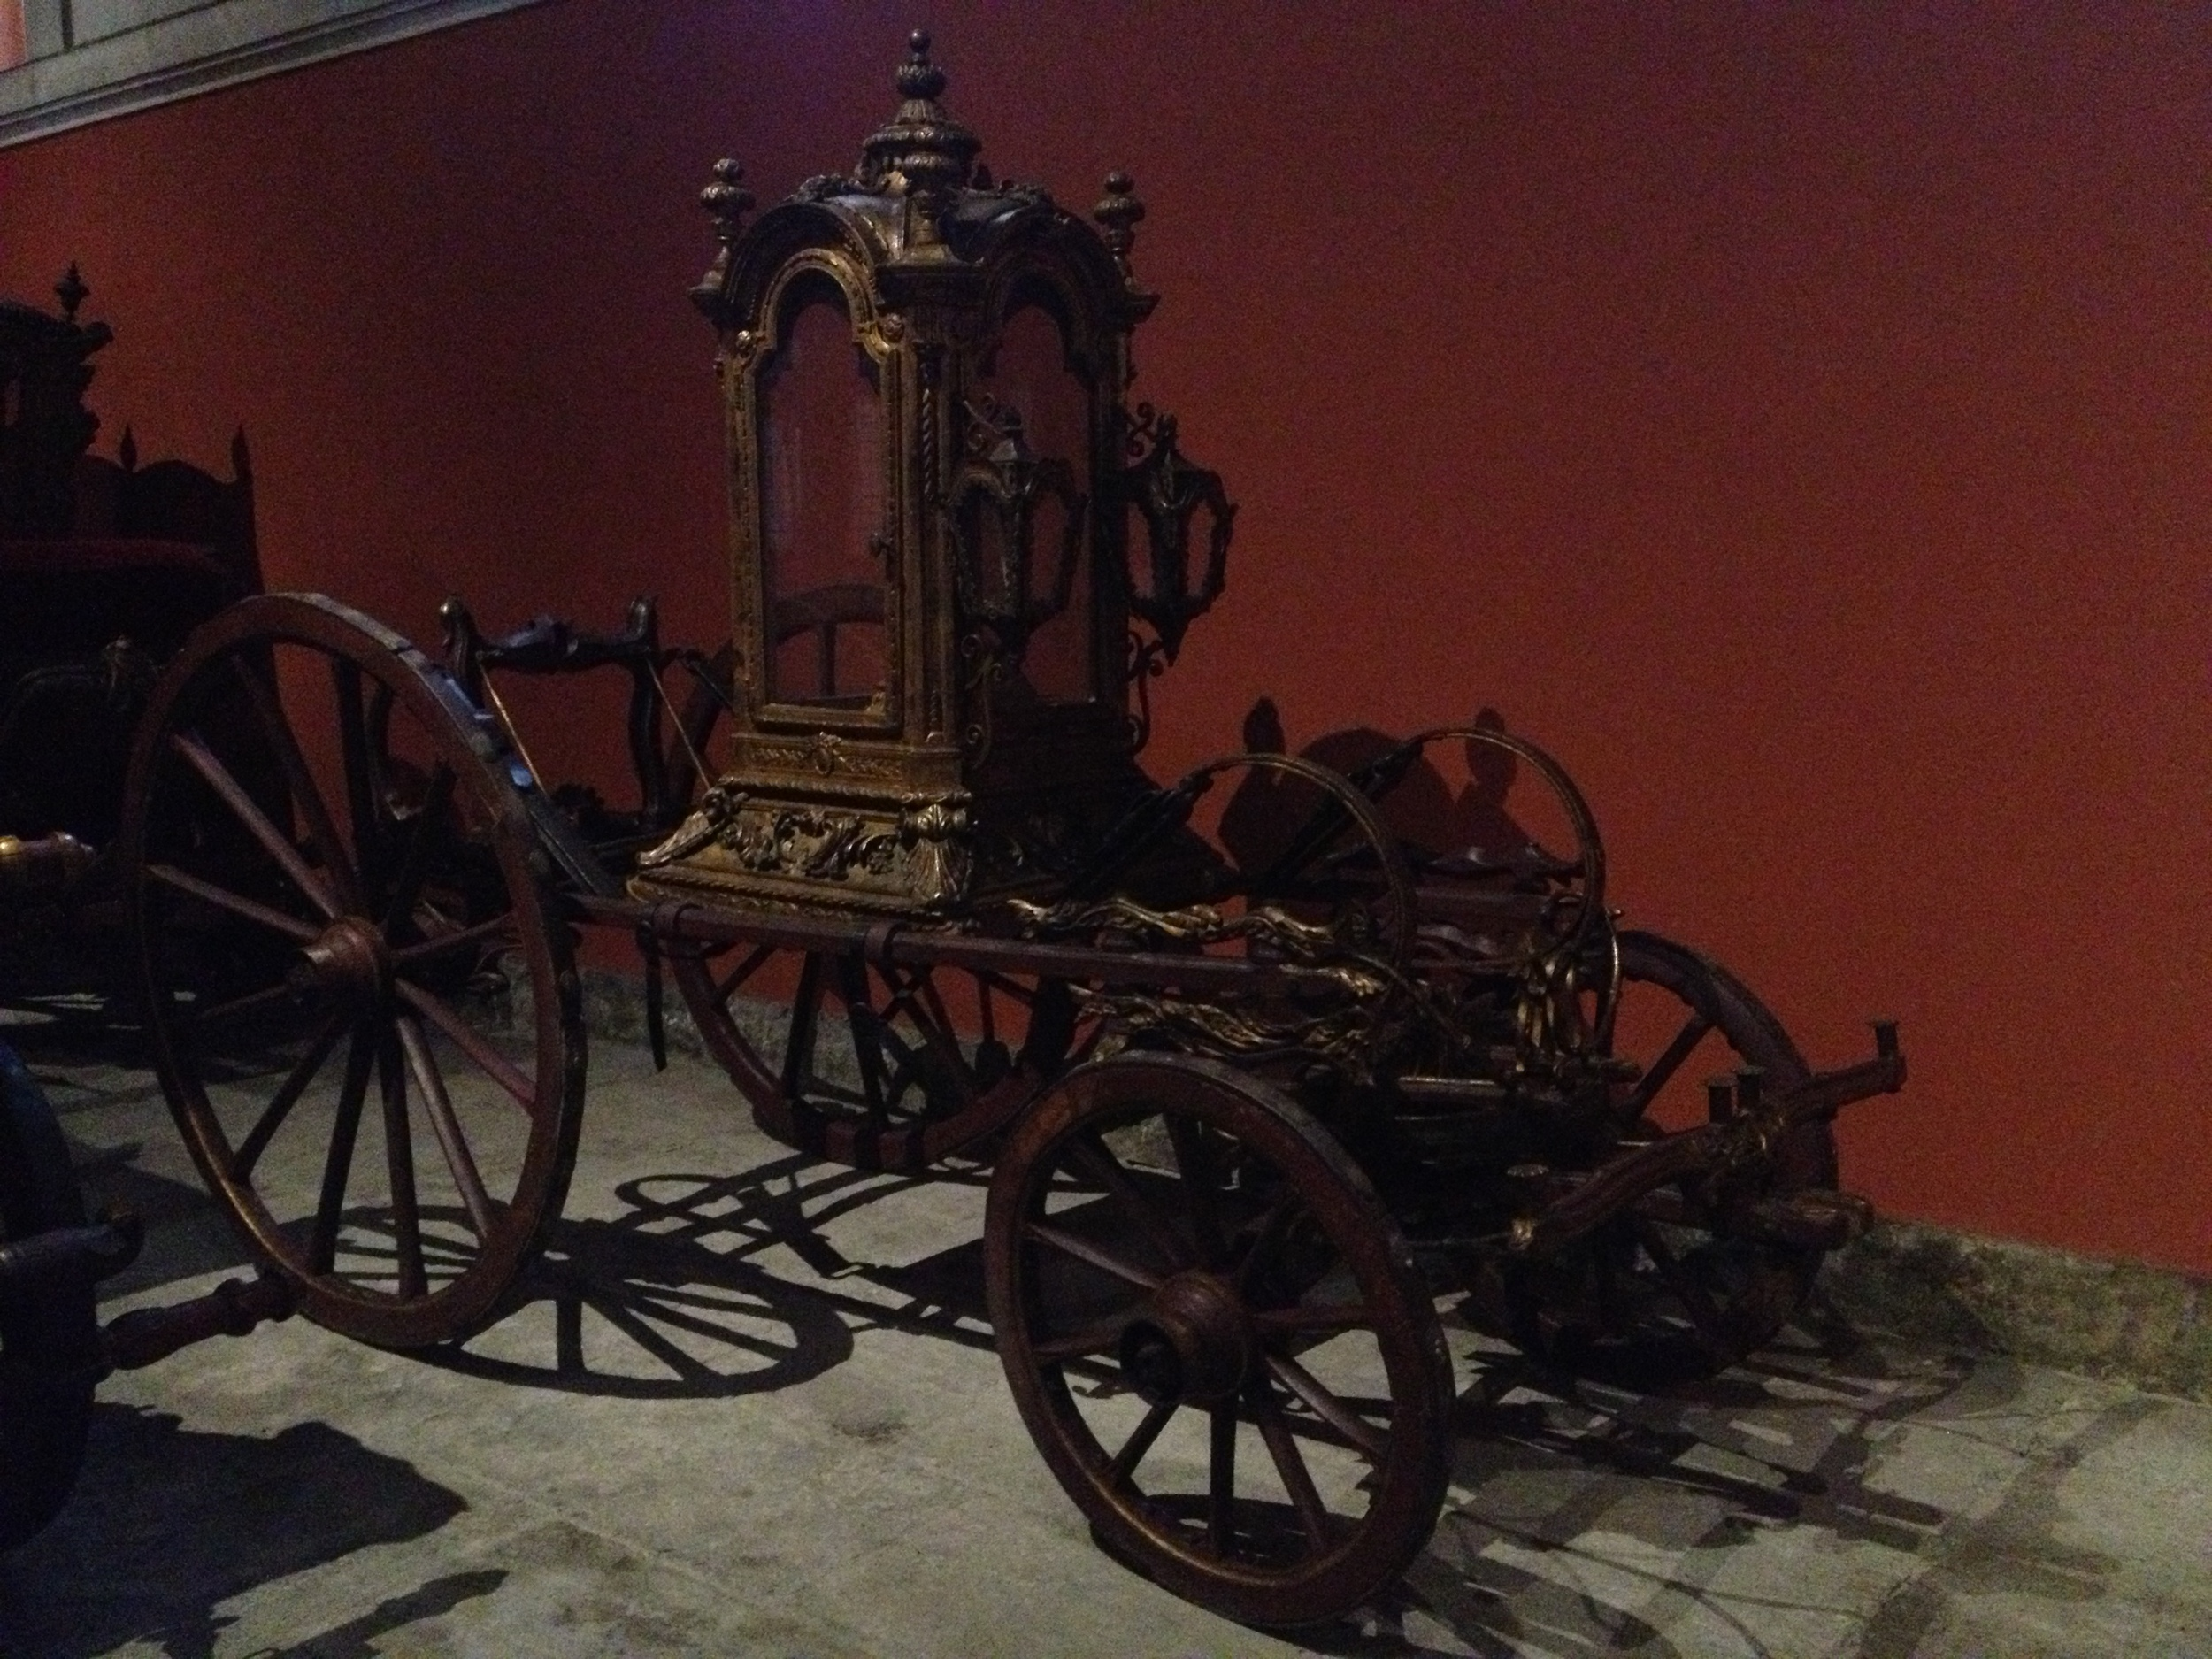 Processional Berlin late 18th century Portugal for transportation of sacred statues